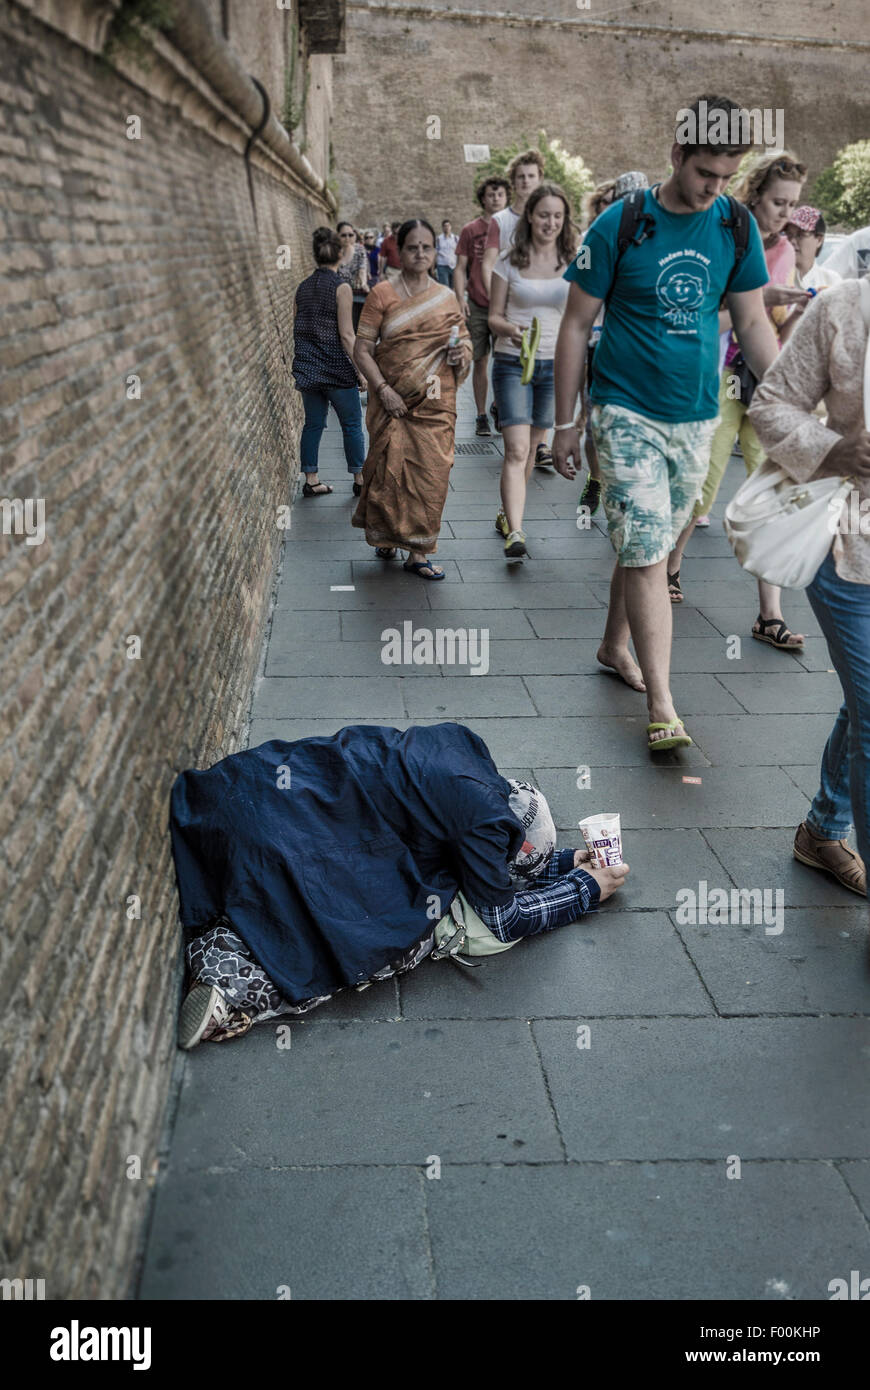 Woman street beggar outside the walls of the Vatican. Rome, Italy. - Stock Image